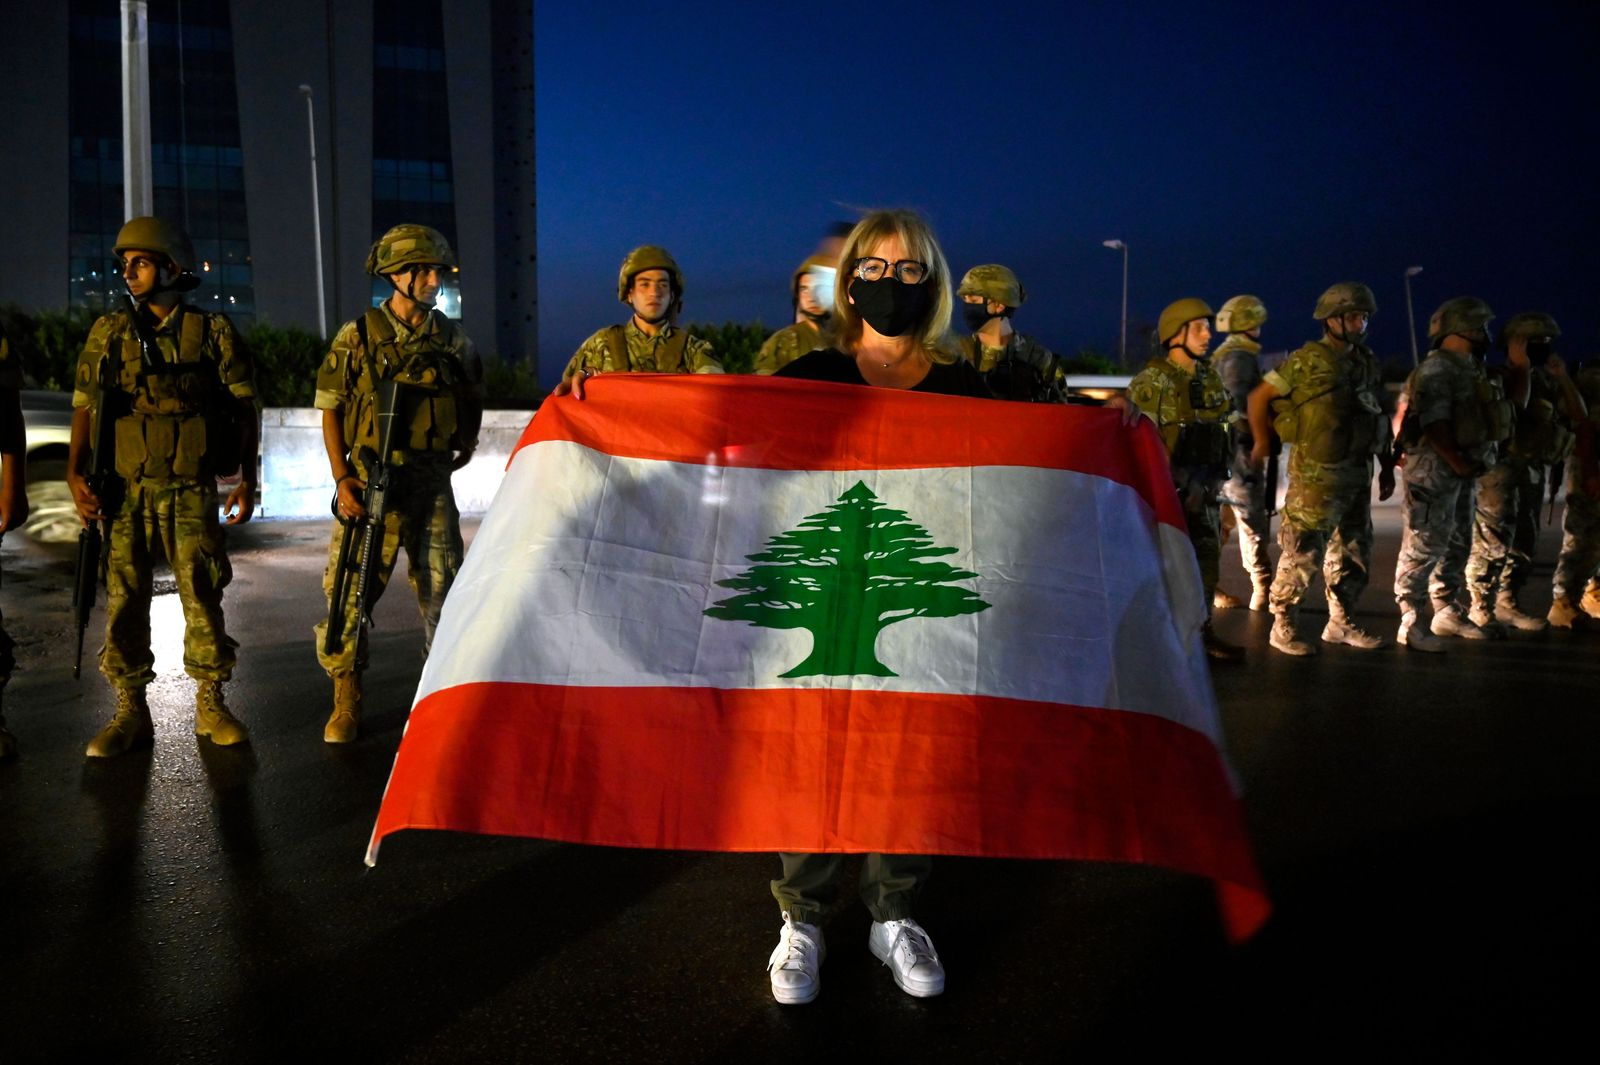 Anti-government protest in Beirut, Lebanon - 27 Sep 2020